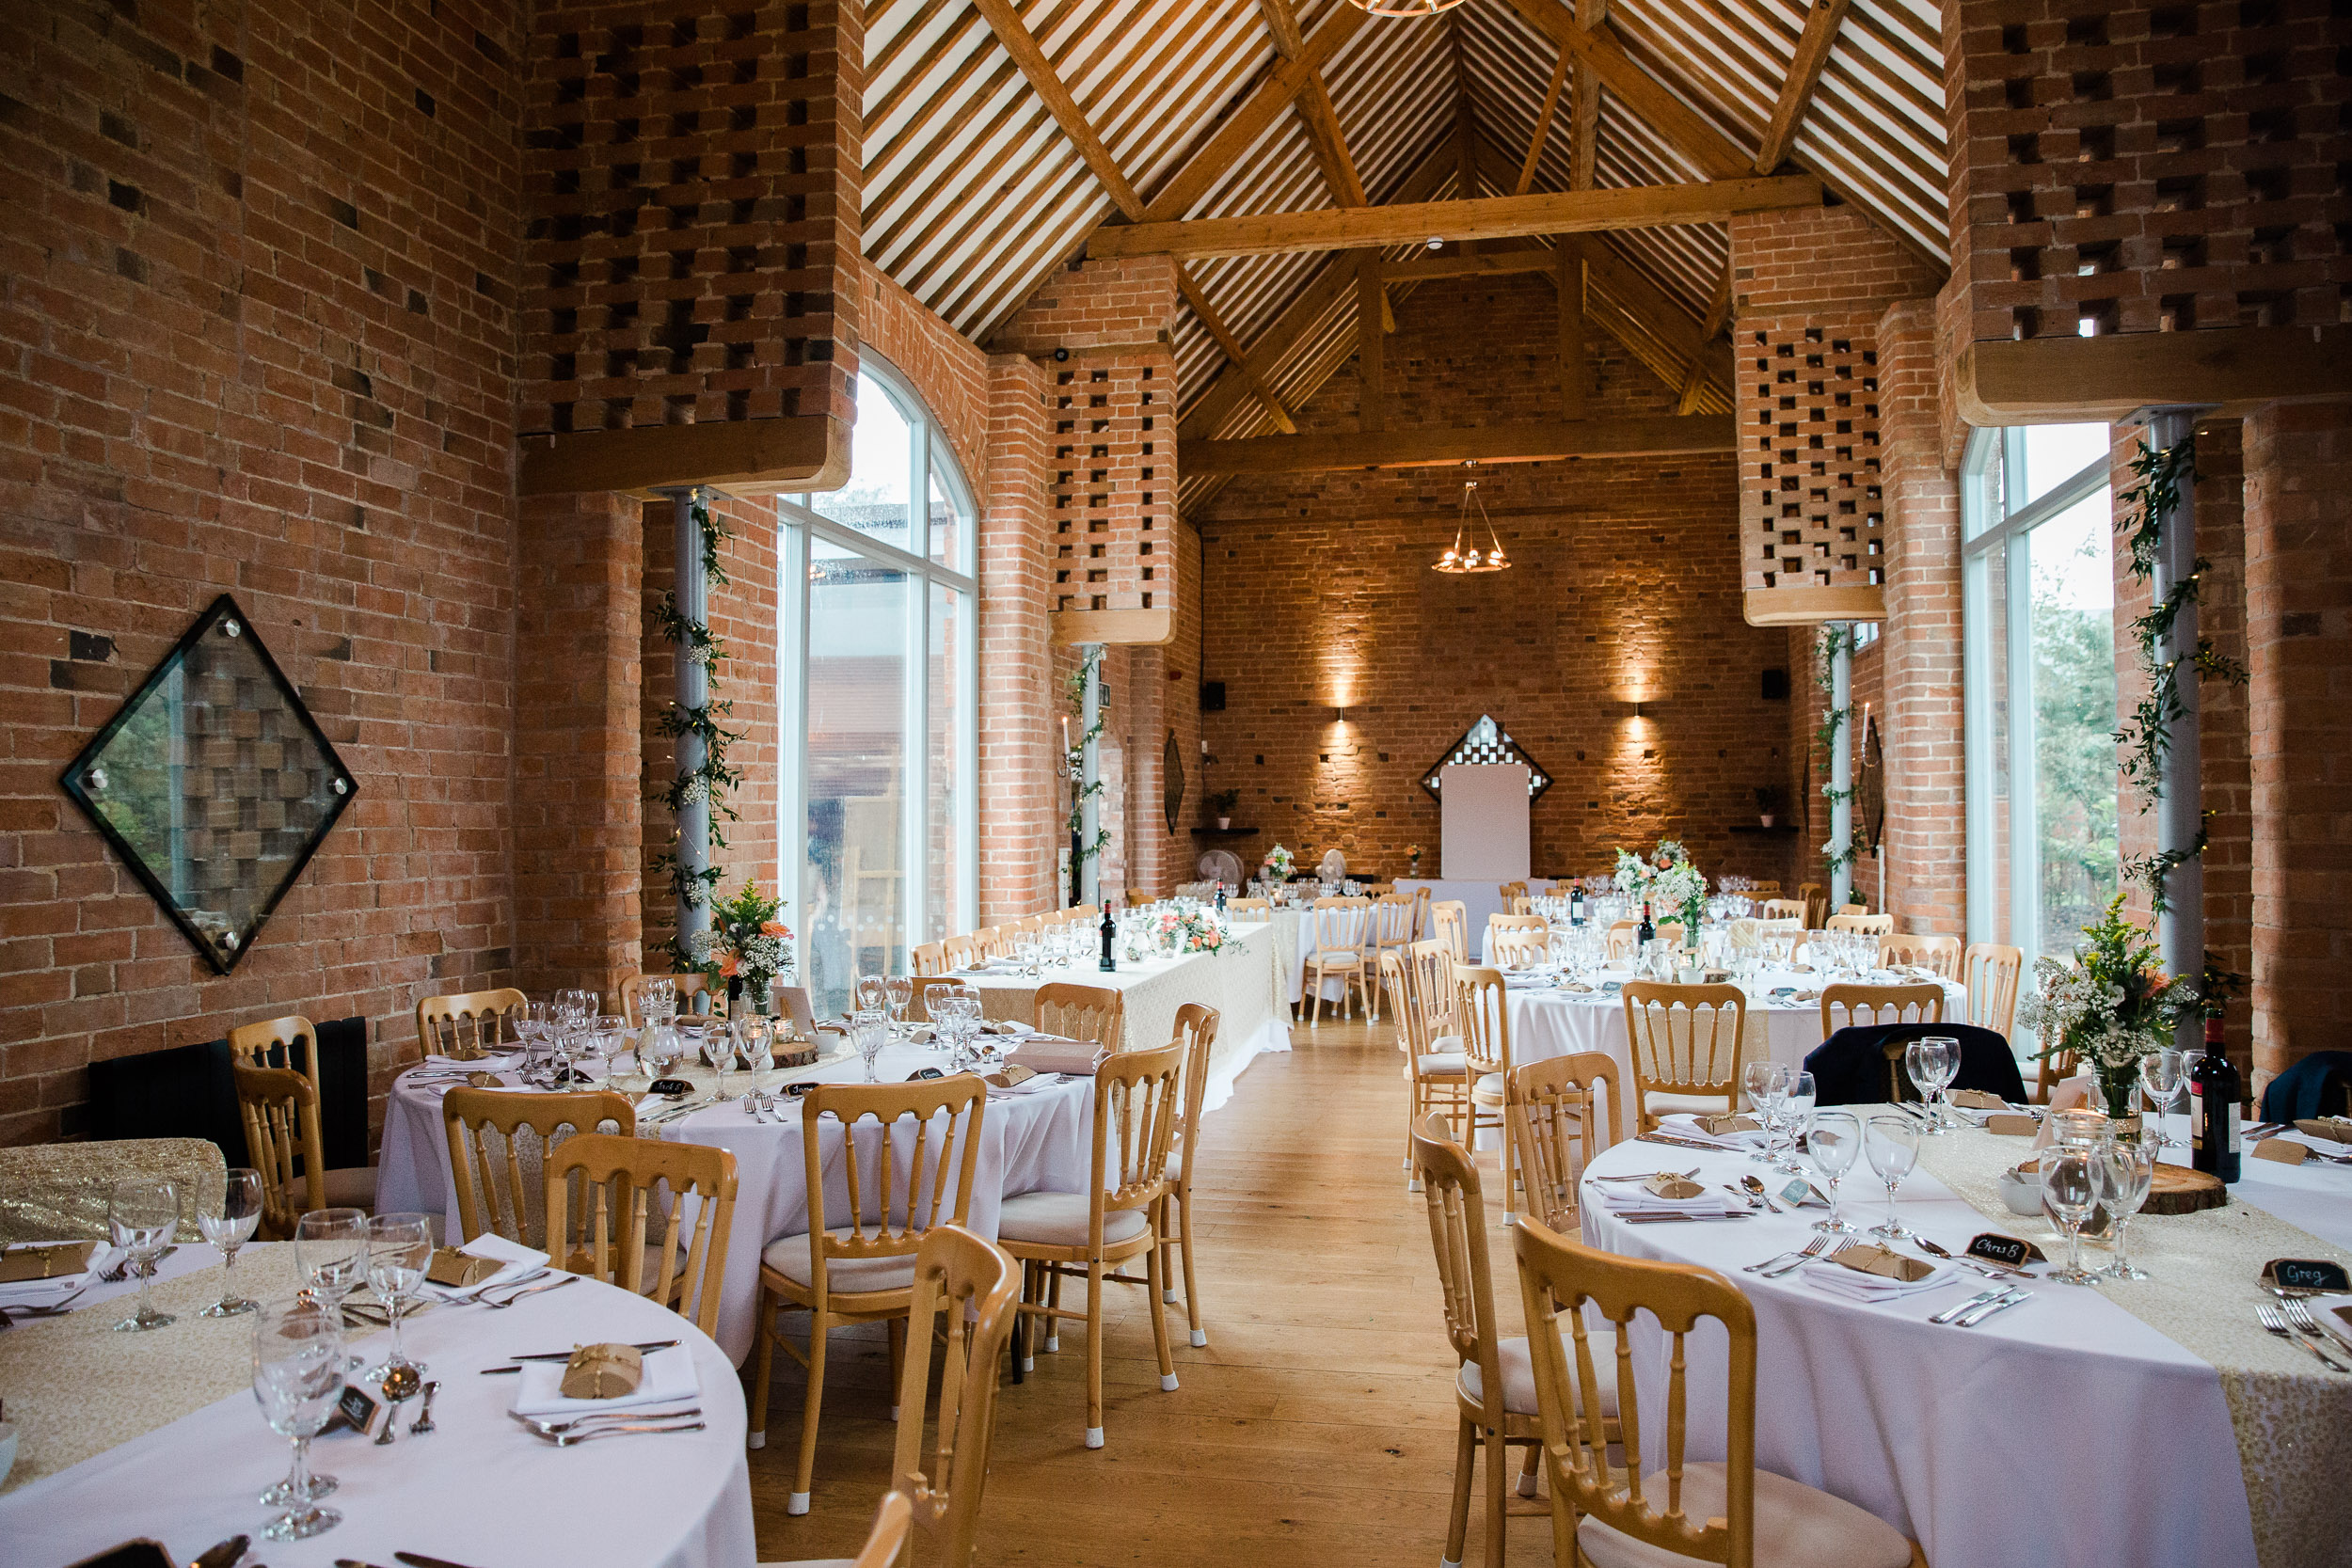 Swallows Nest Barn Chic & Rustic Wedding-106